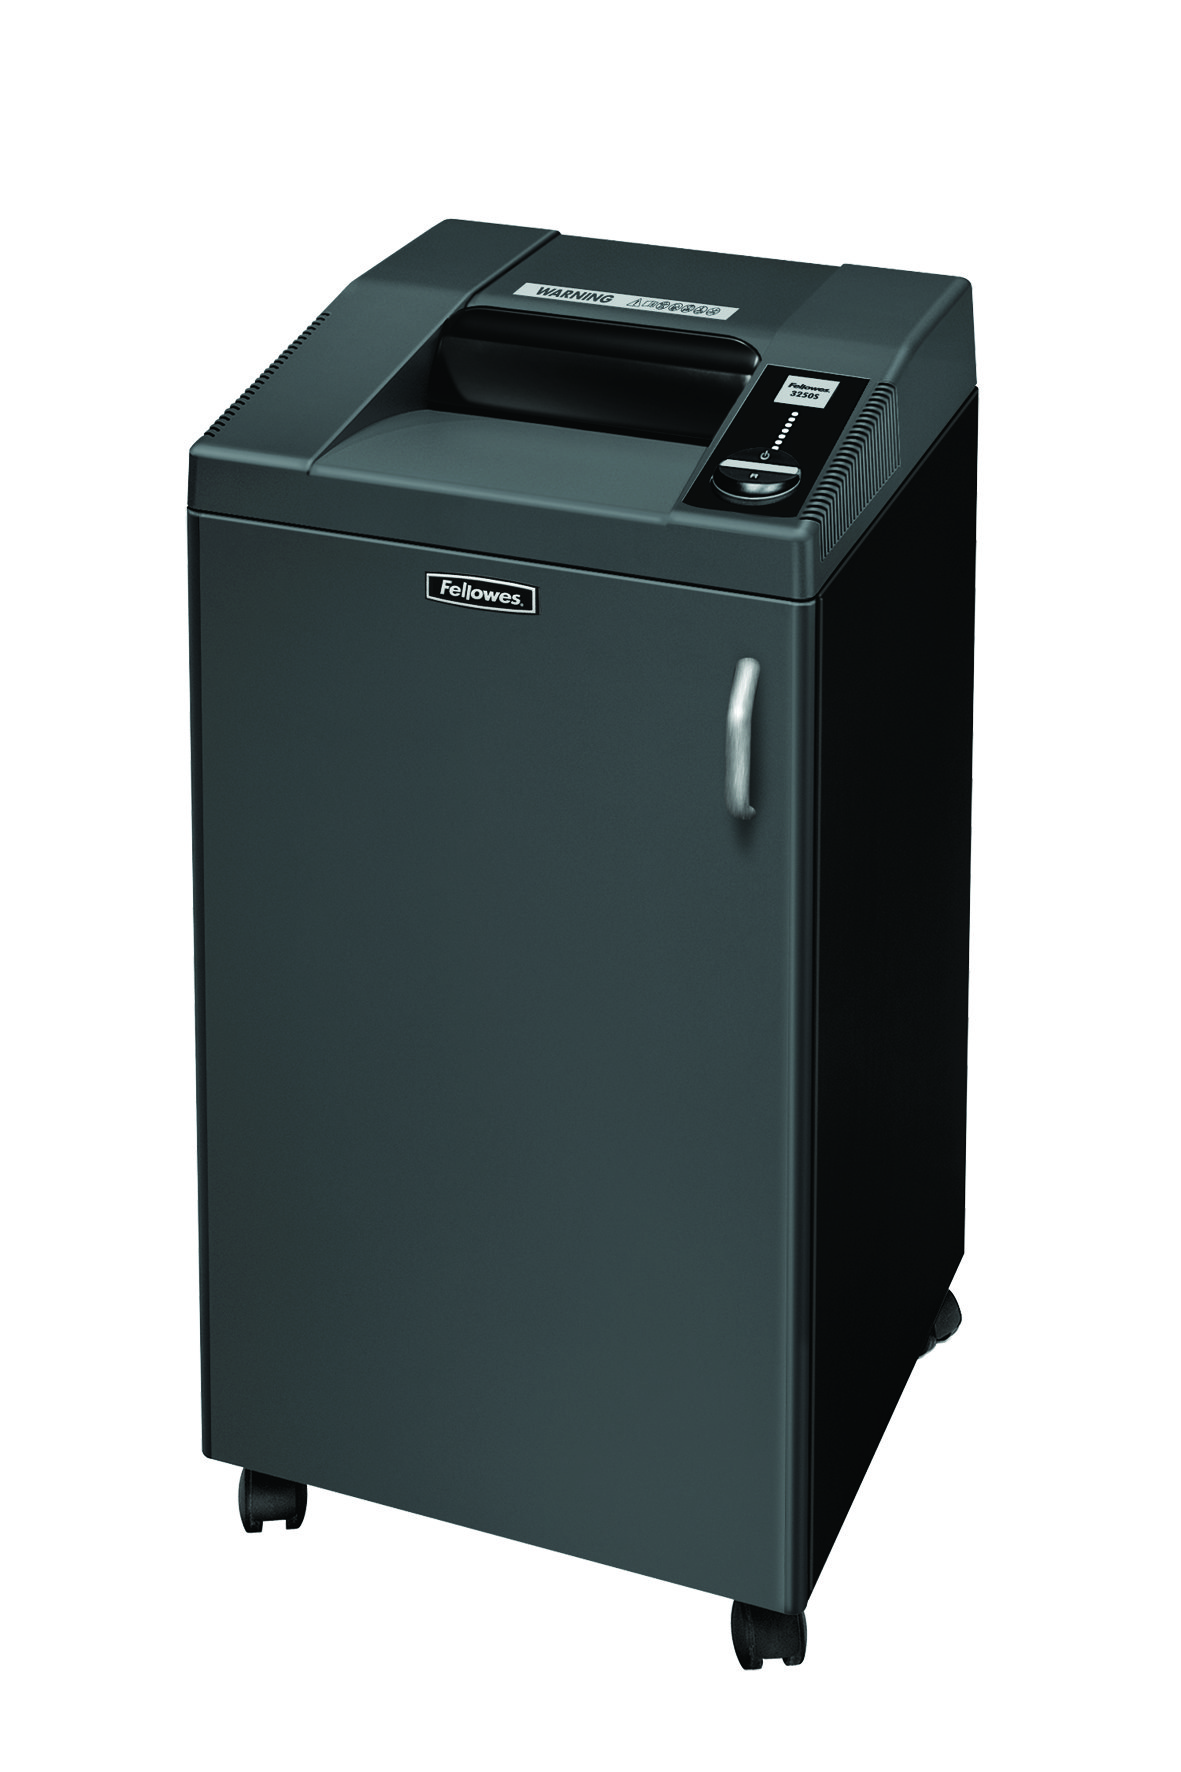 Destruidora de Papel Fellowes 3250HS, 7 Fls, 100L  com Rodas (Corte 0.8x50mm)